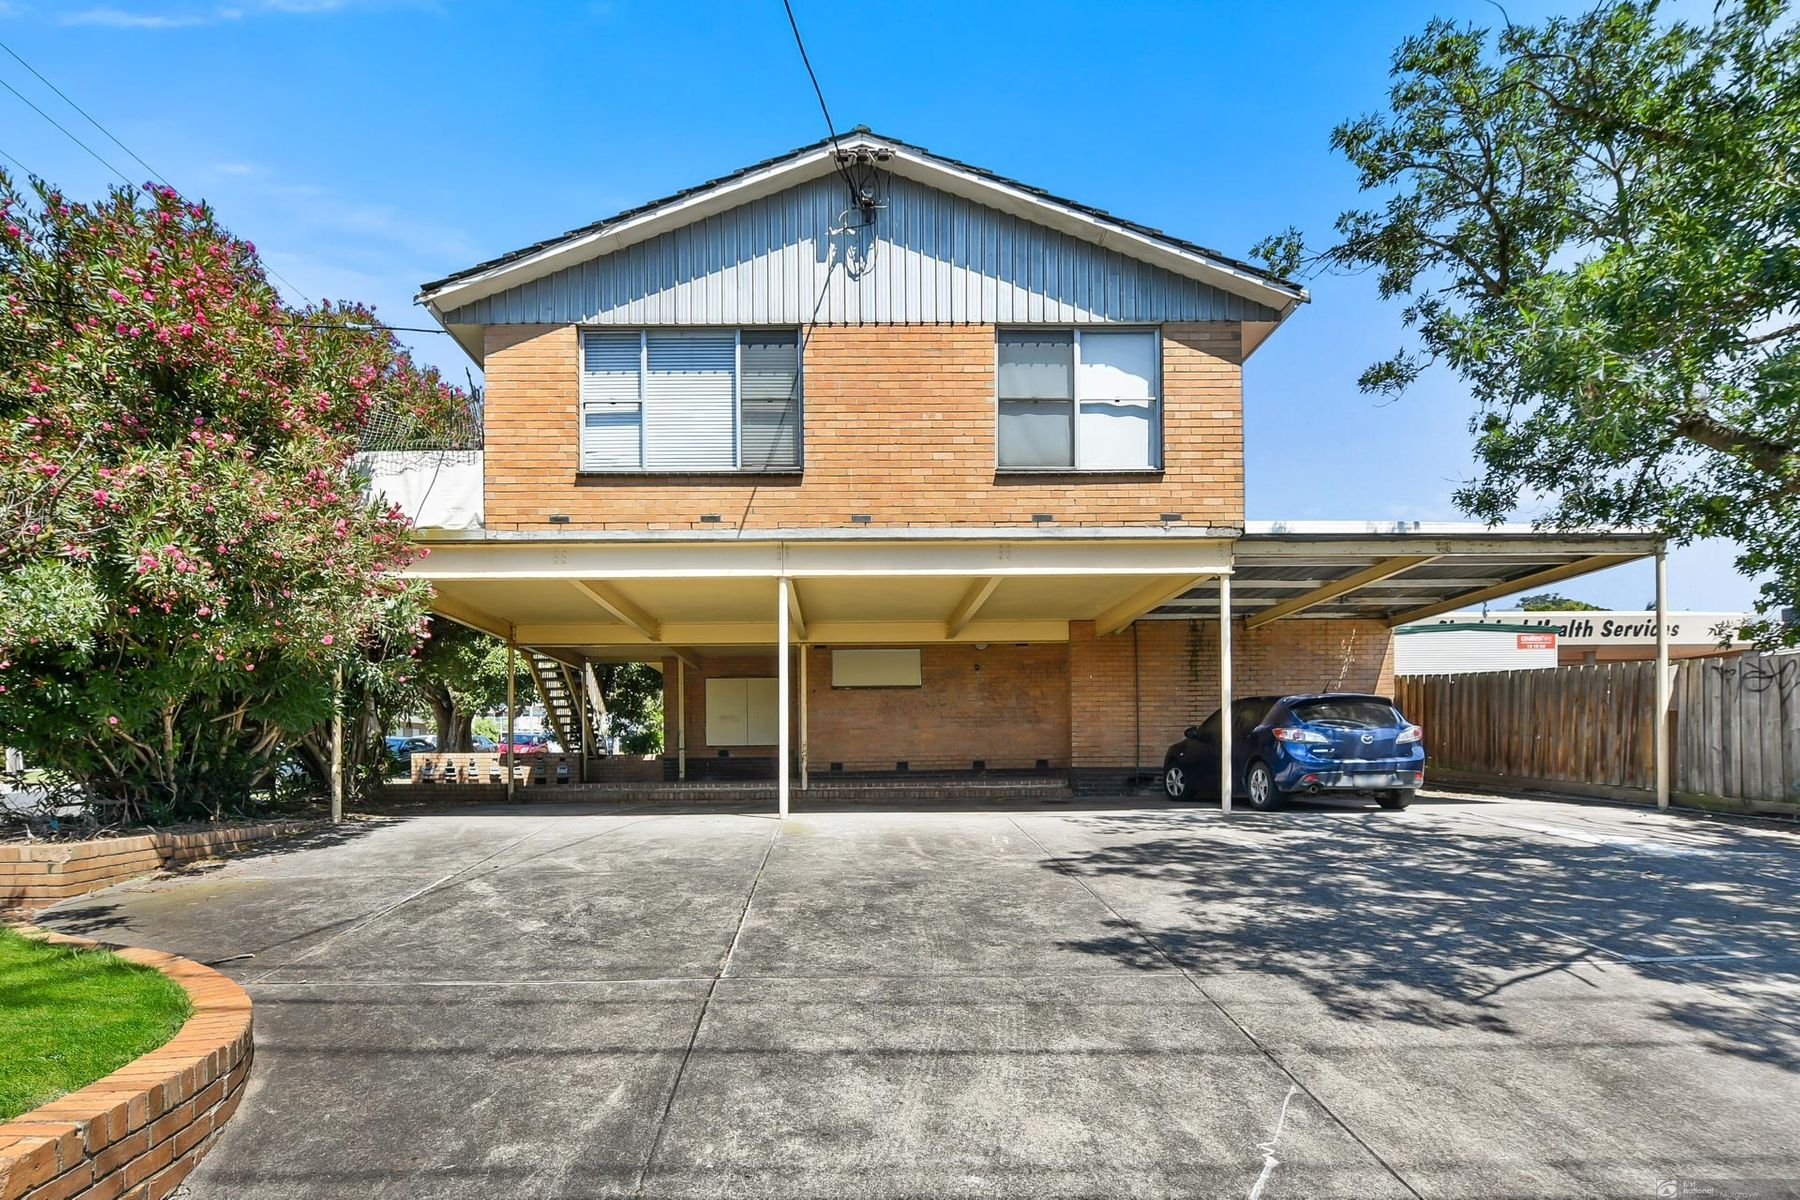 2/1 Carroll Avenue, Dandenong, VIC 3175